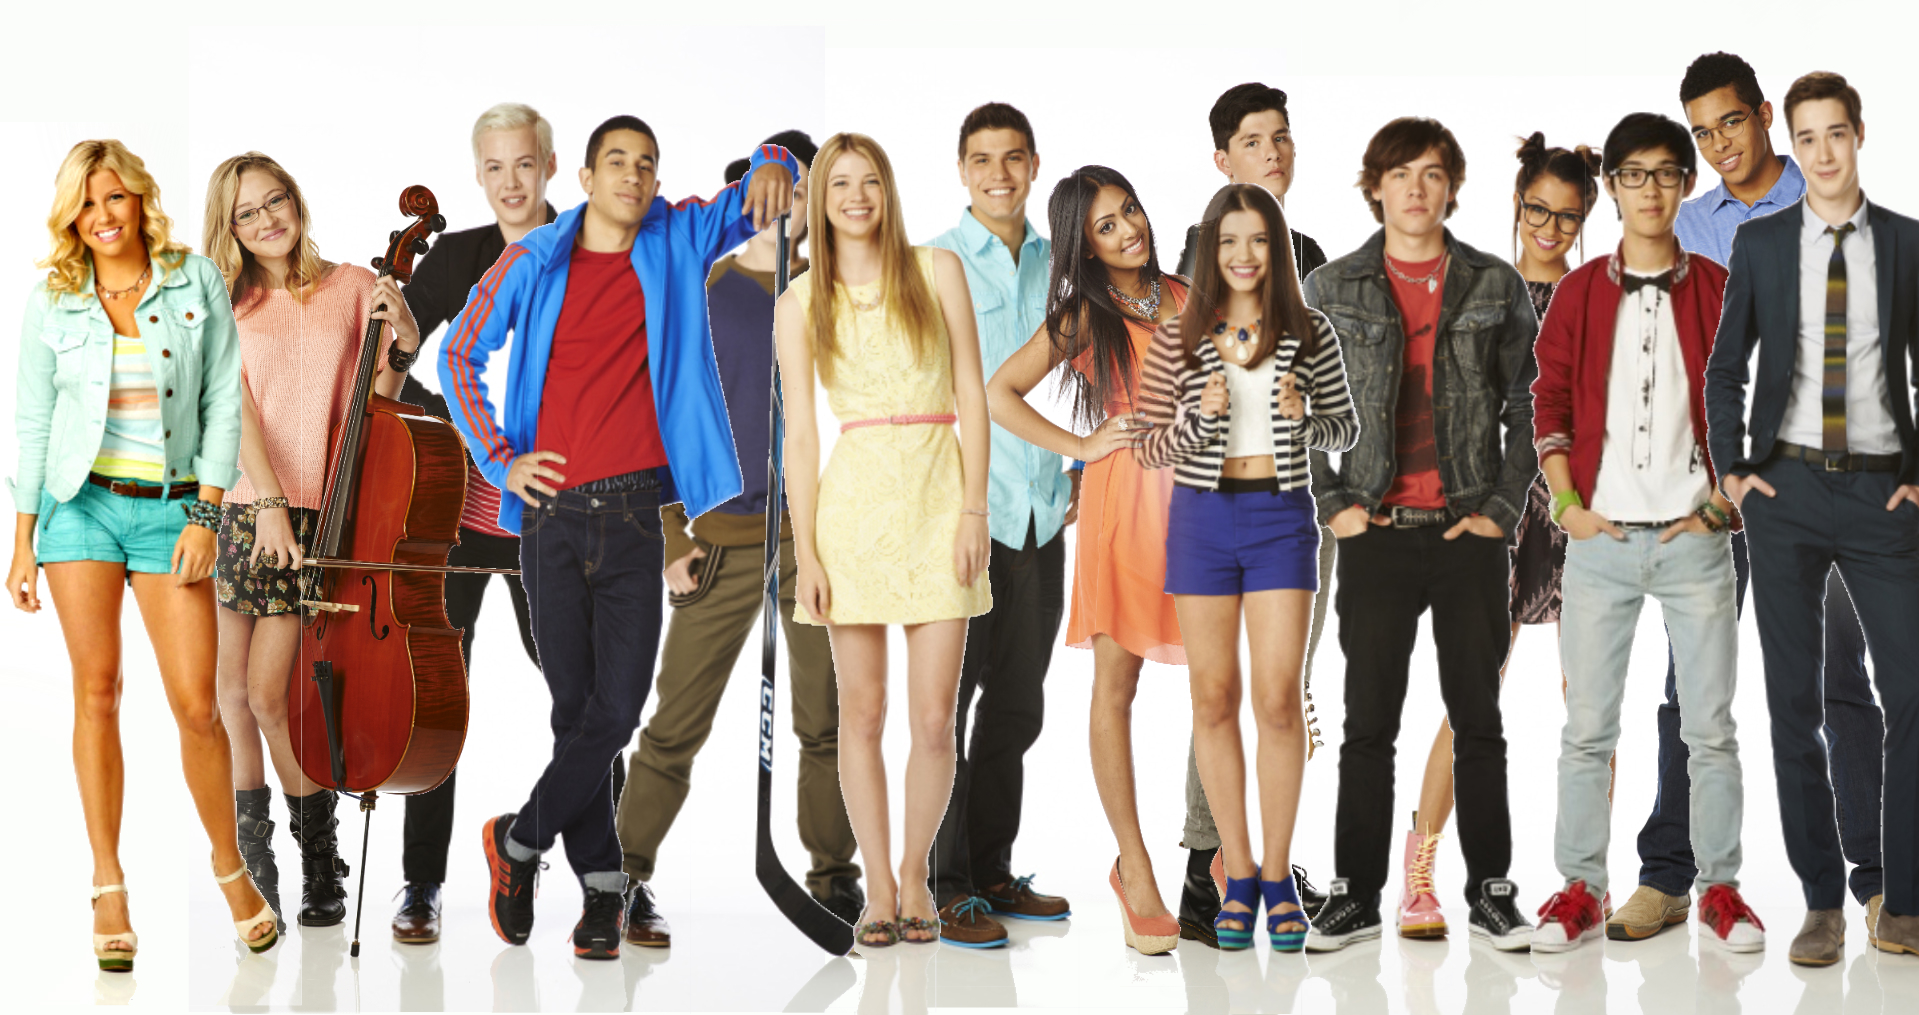 Degrassi season 14 episode 22 online dating 2